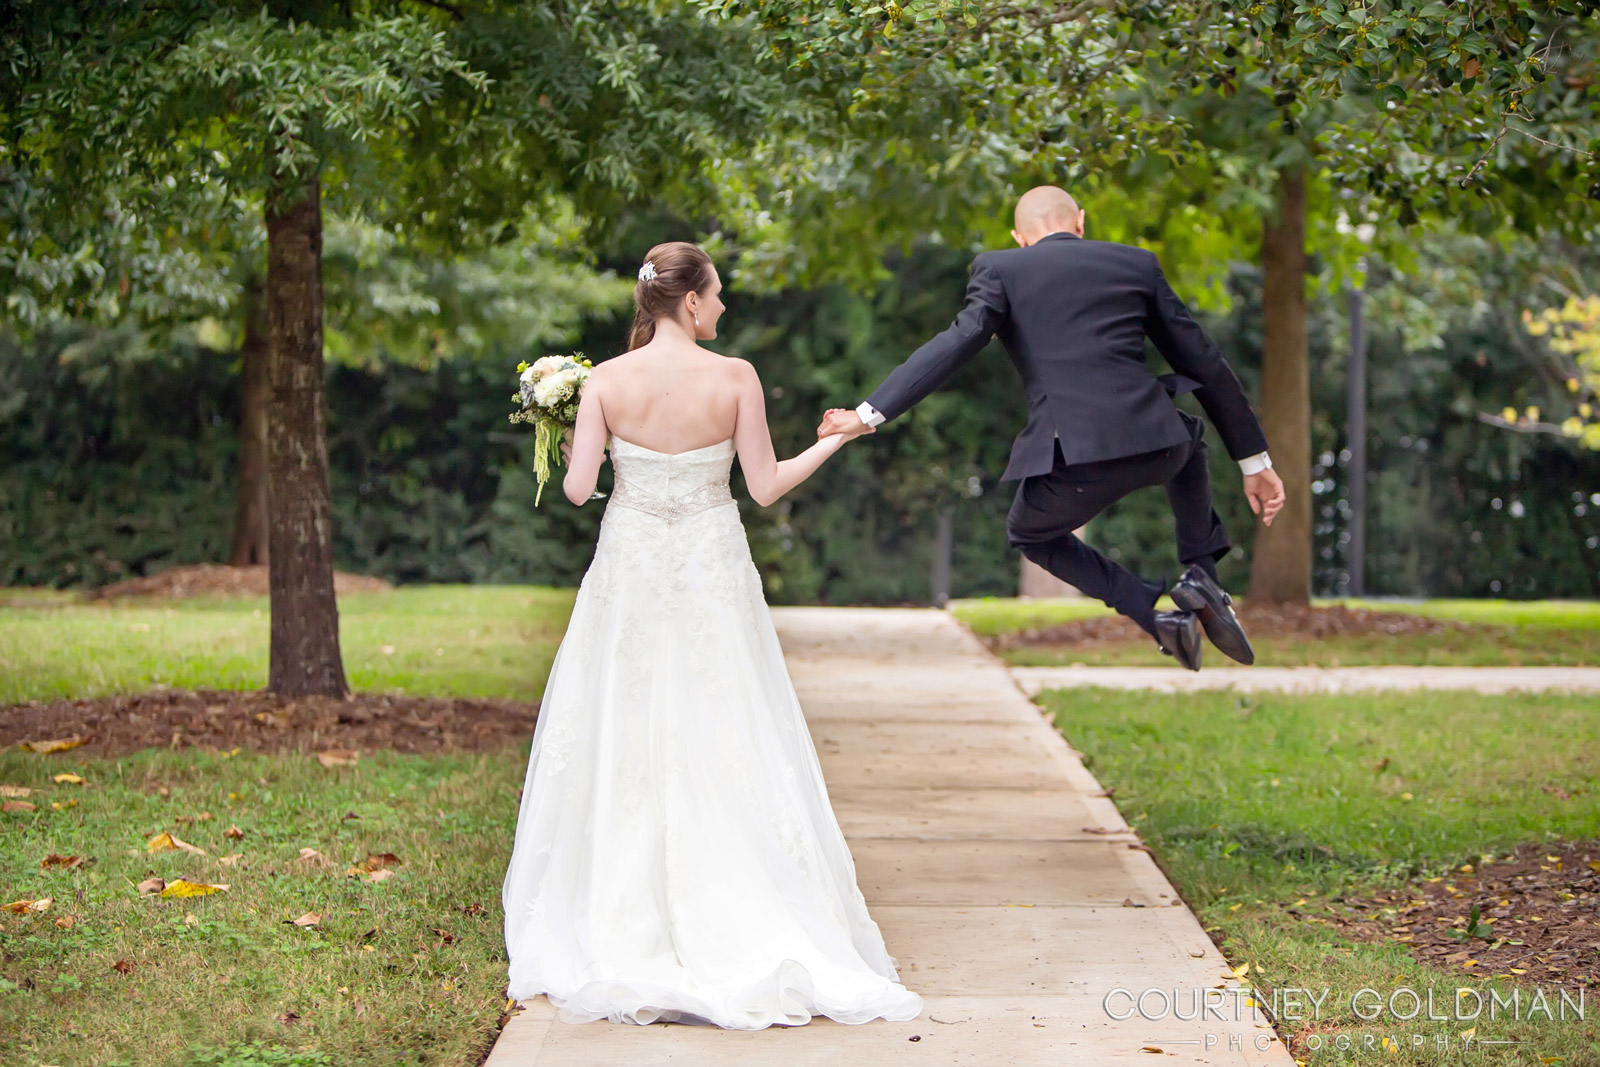 Atlanta-Wedding-Photography-by-Courtney-Goldman-24.jpg